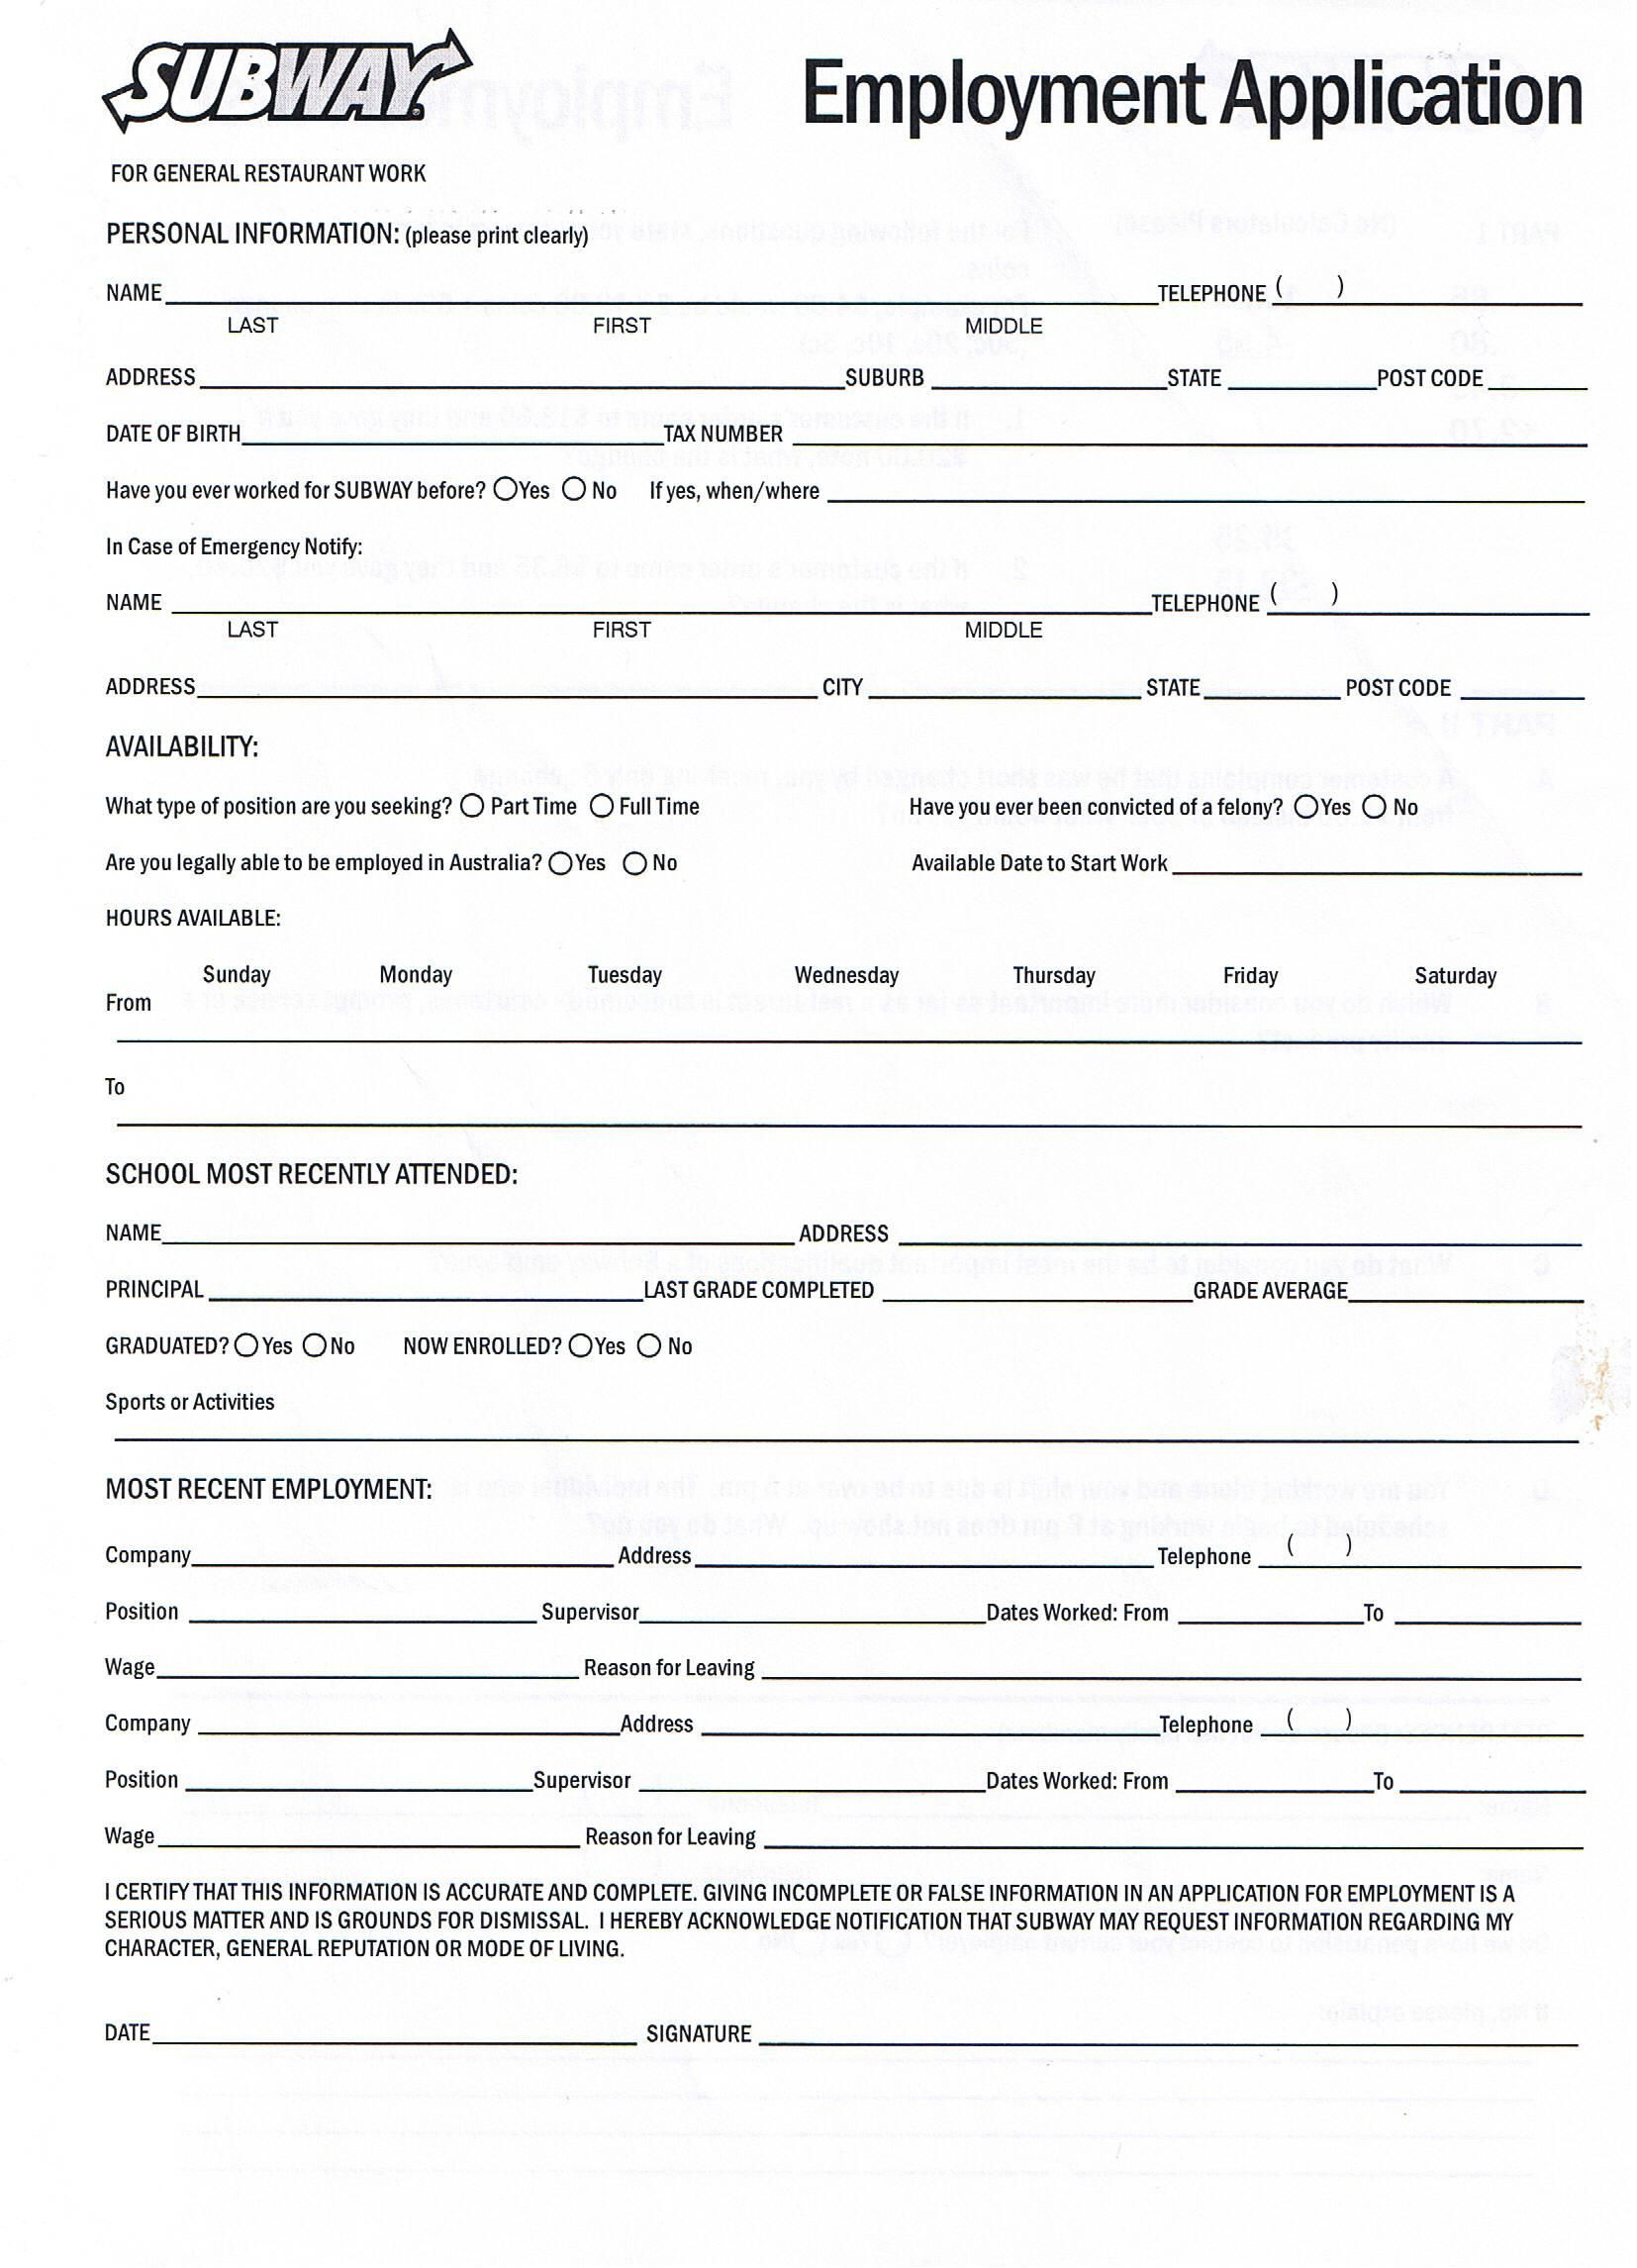 Printable Employment Application For Subway (With images